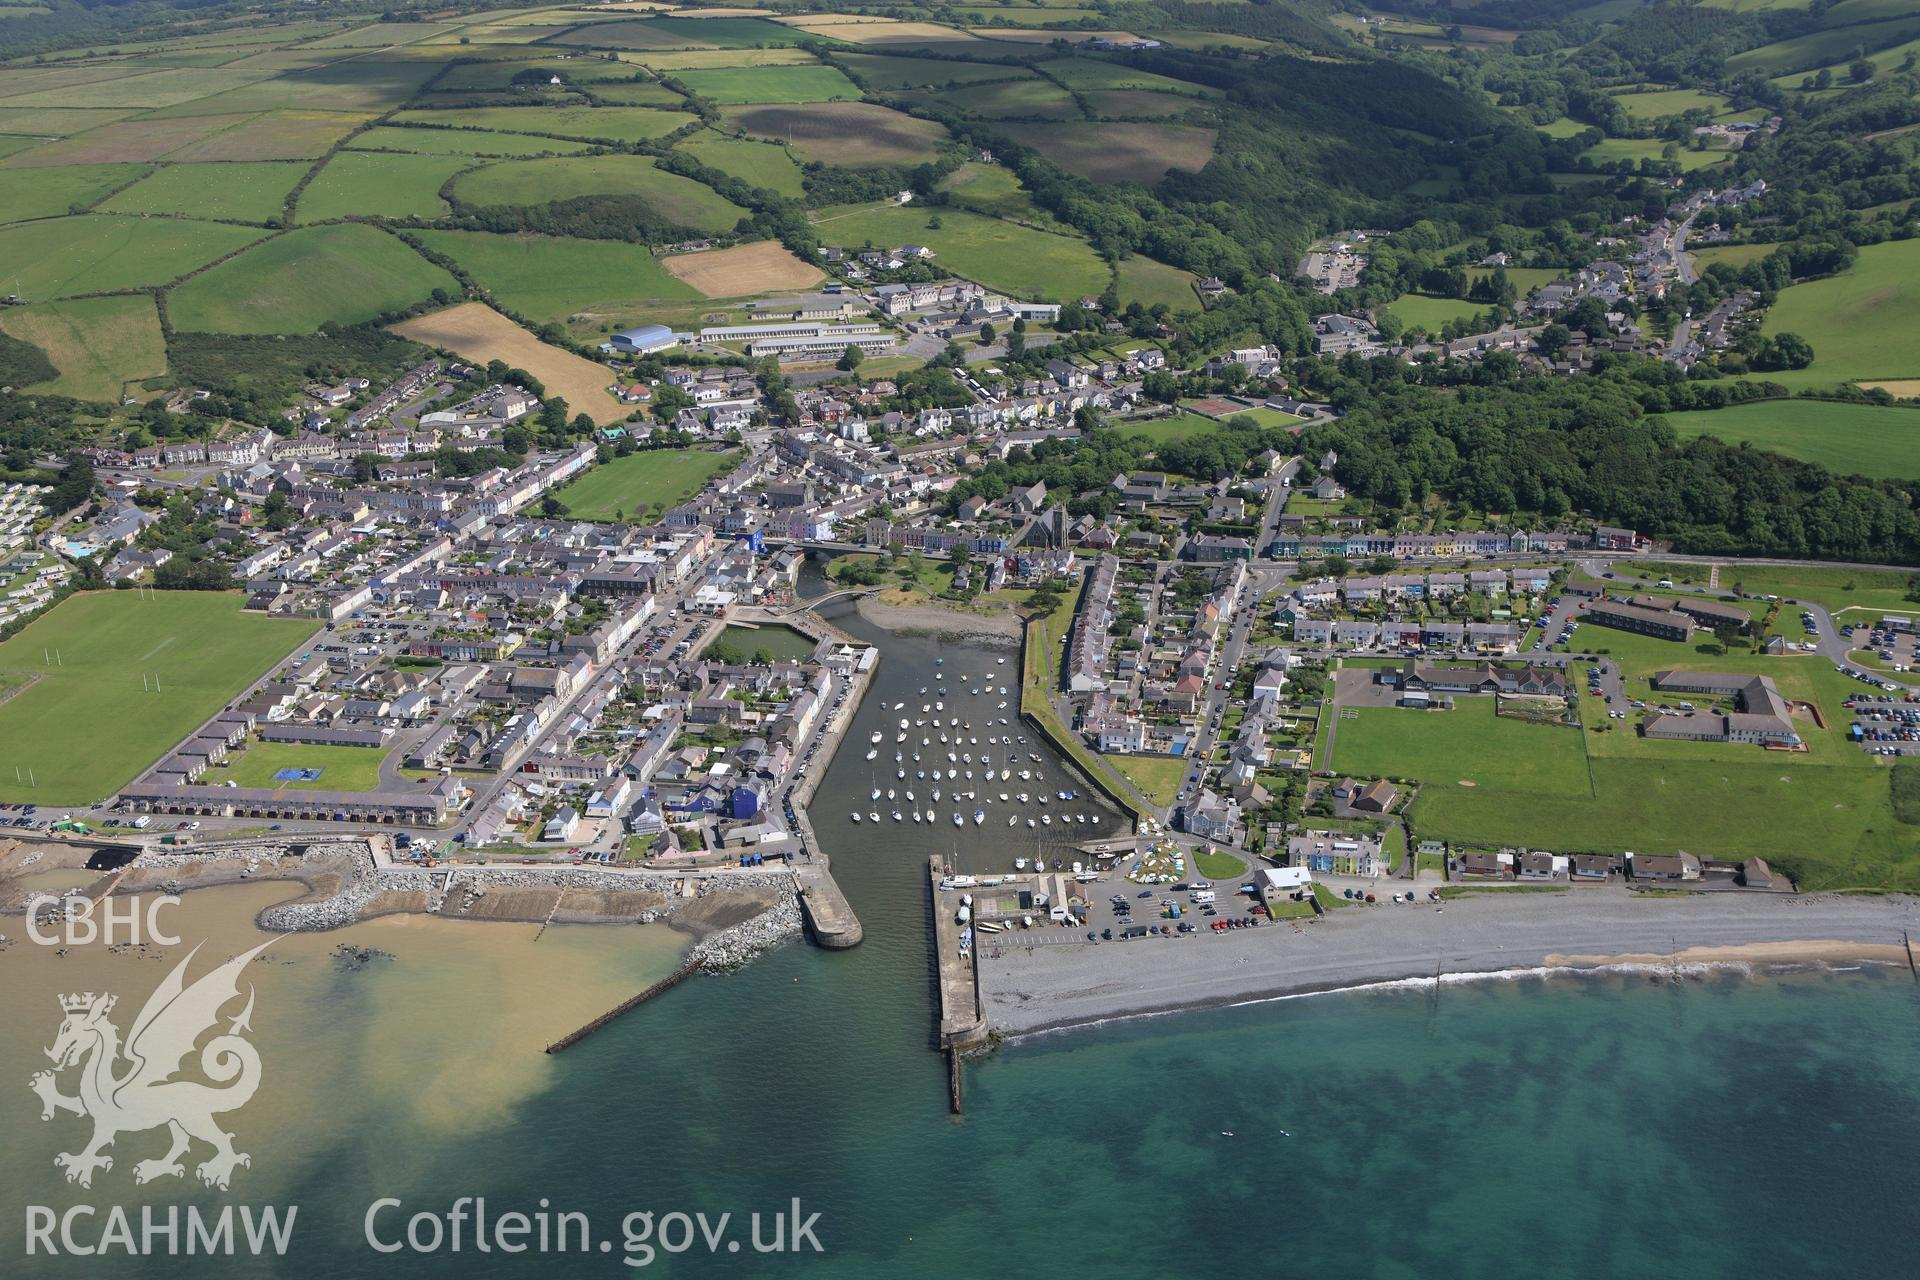 RCAHMW colour oblique aerial photograph of Aberaeron. Taken on 16 June 2009 by Toby Driver